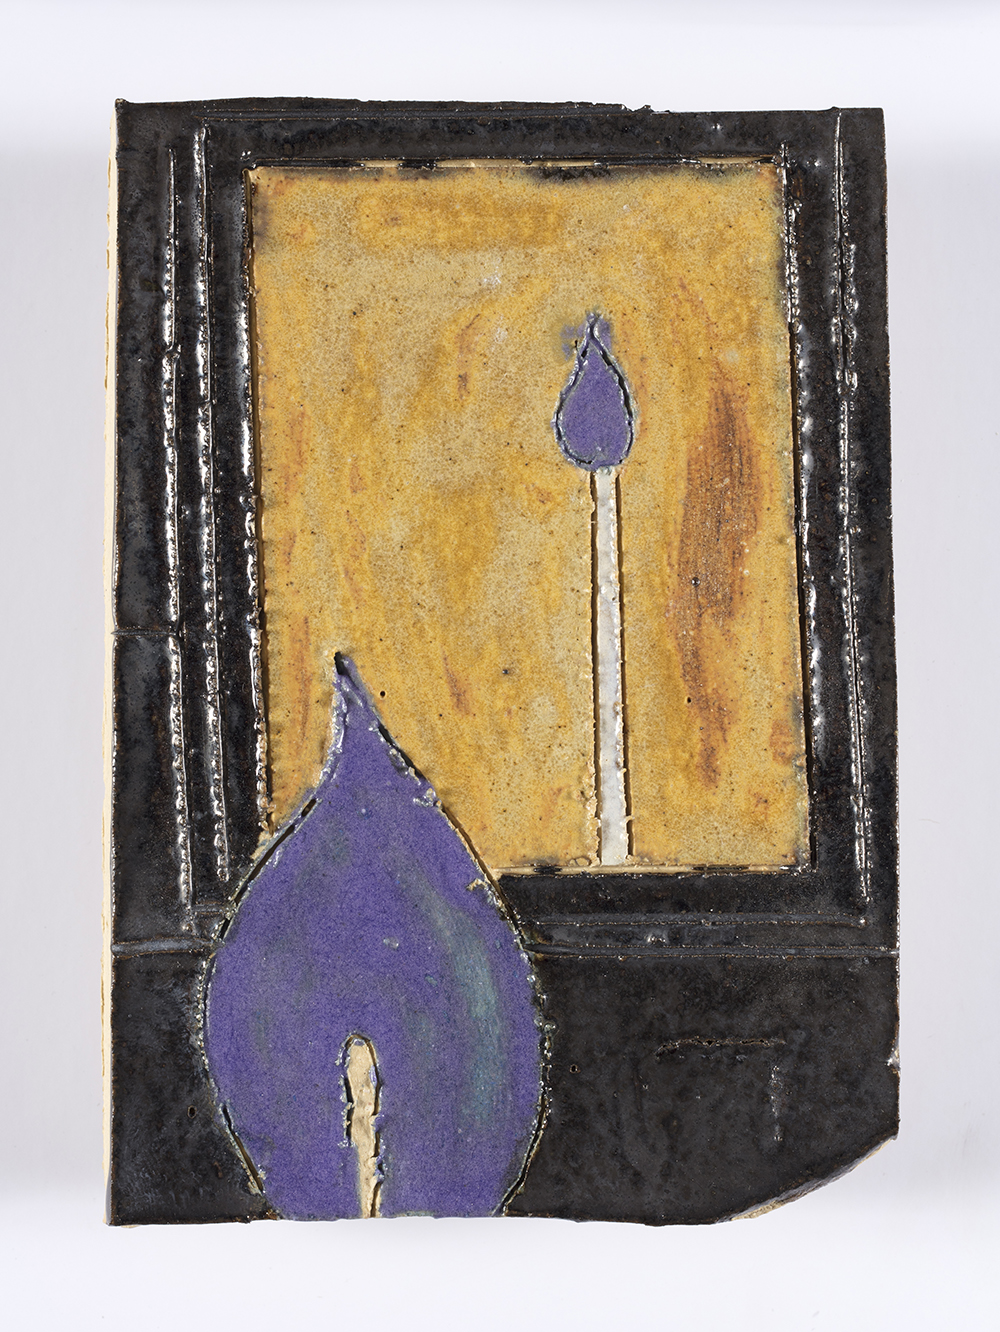 Kevin McNamee-Tweed. <em>Candle Reflection</em>, 2018. Glazed ceramic, 5 1/4 x 3 5/8 inches  (13.3 x 9.2 cm)